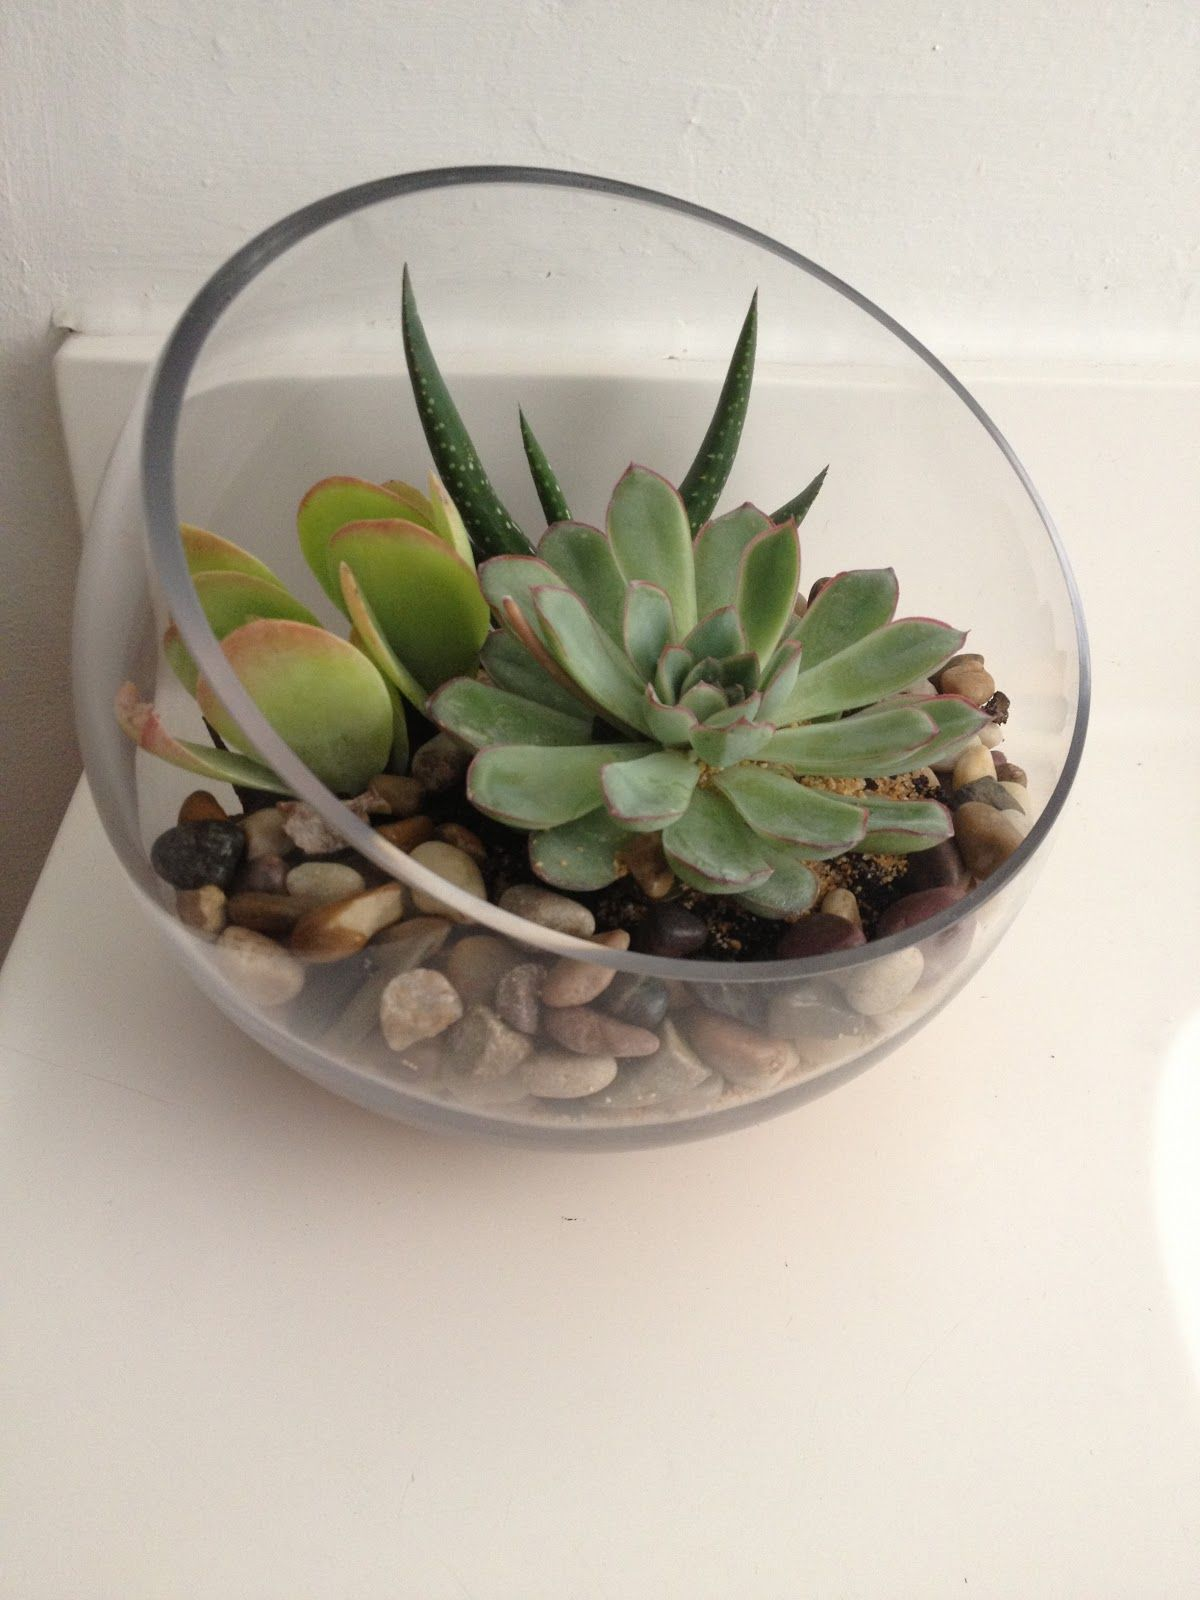 Sprinkling & Decorating With Succulents Around the House